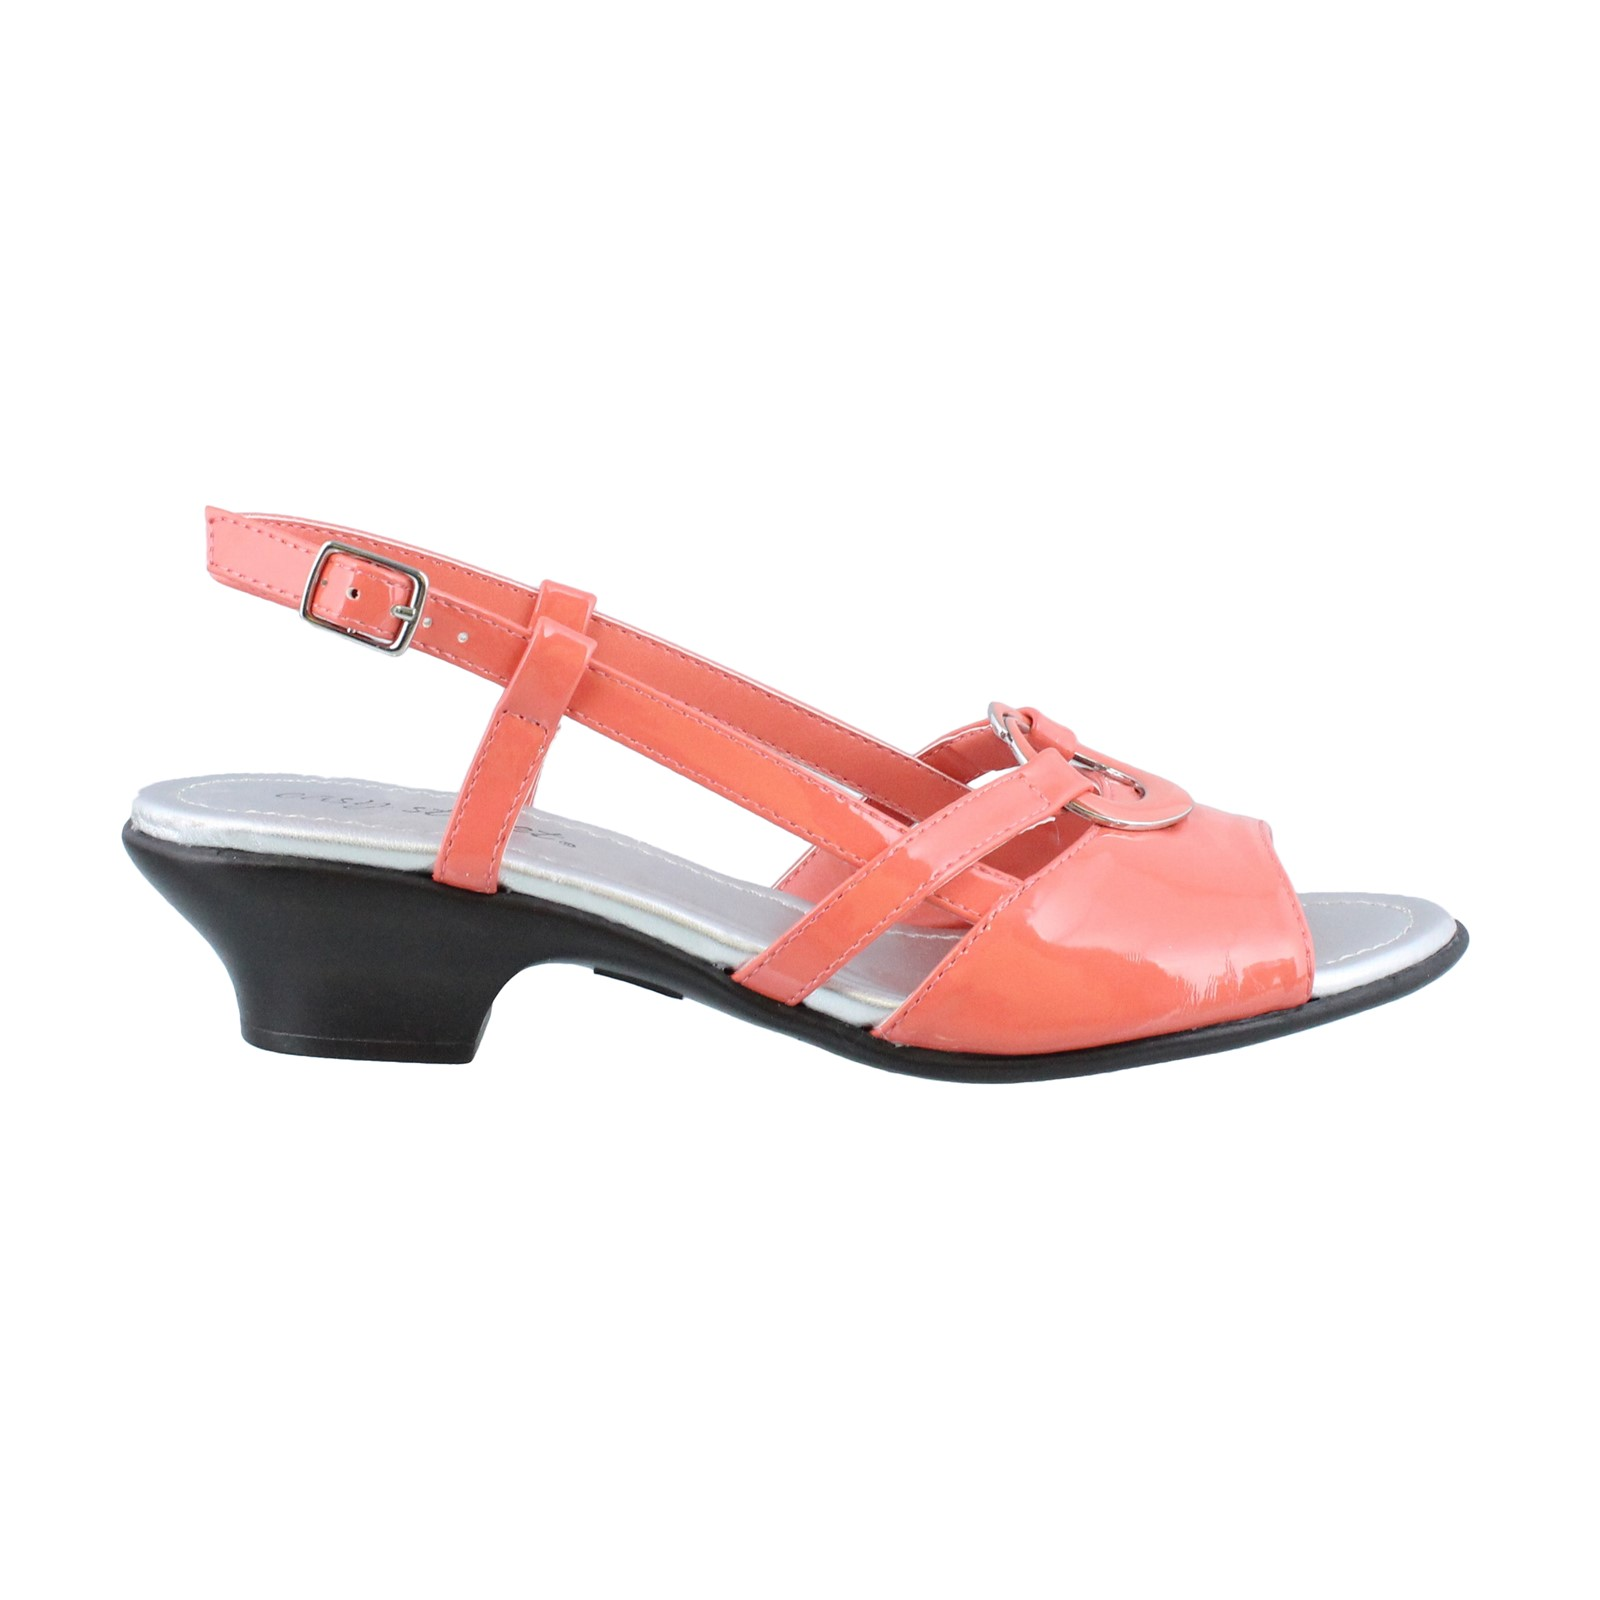 Women's Easy Street, Tempe Low Heel Slingback Sandals